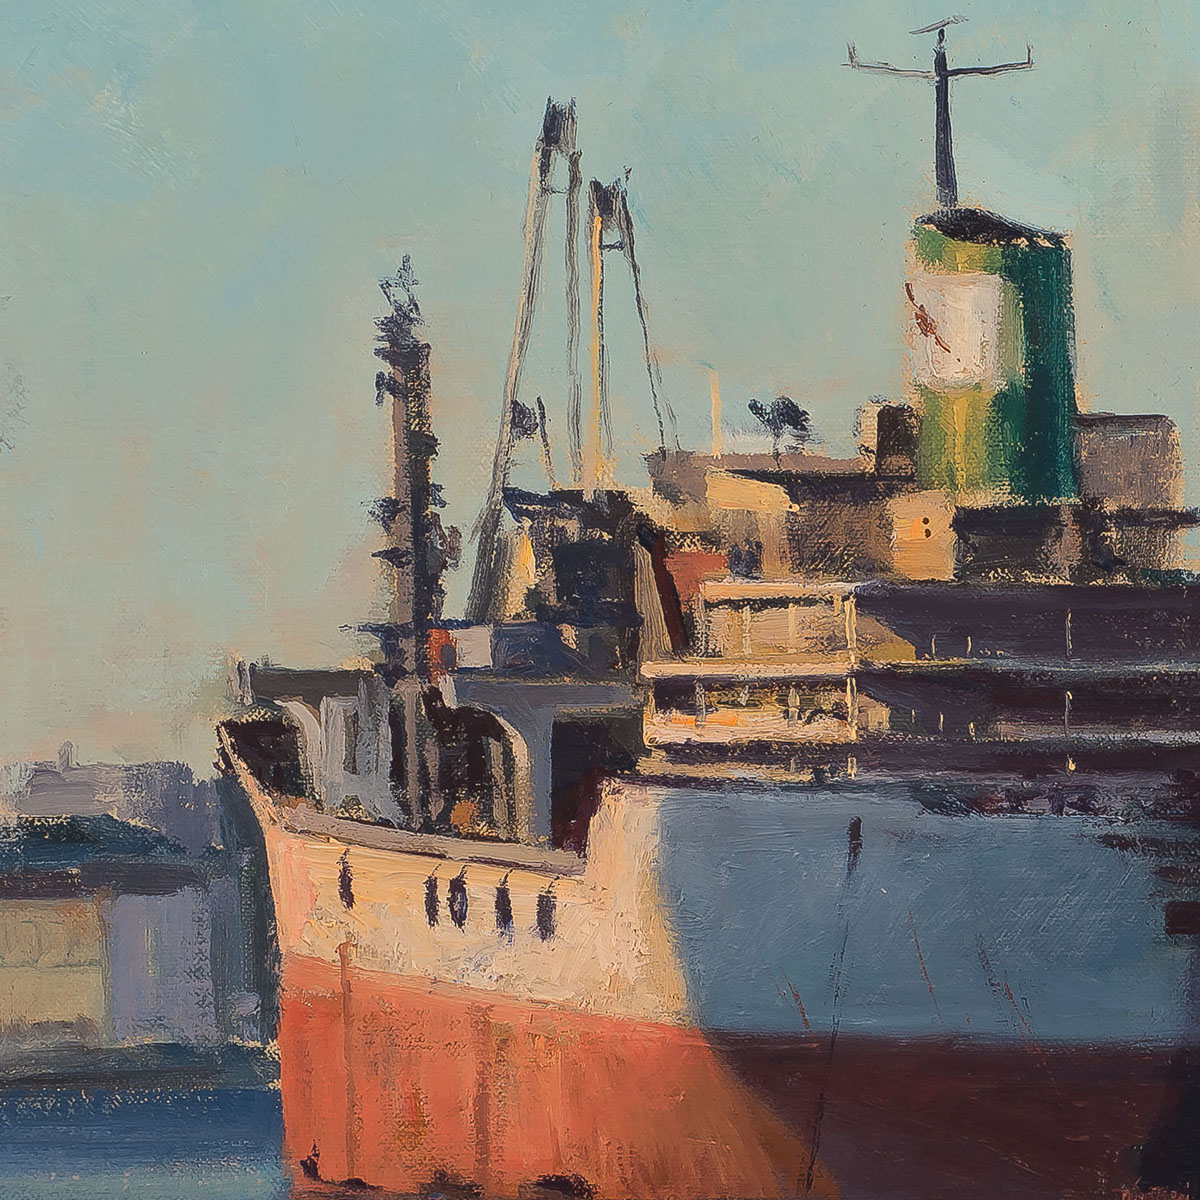 On the Waterfront, Redhook, Brooklyn-24x30-painting by-Joe Paquet-detail